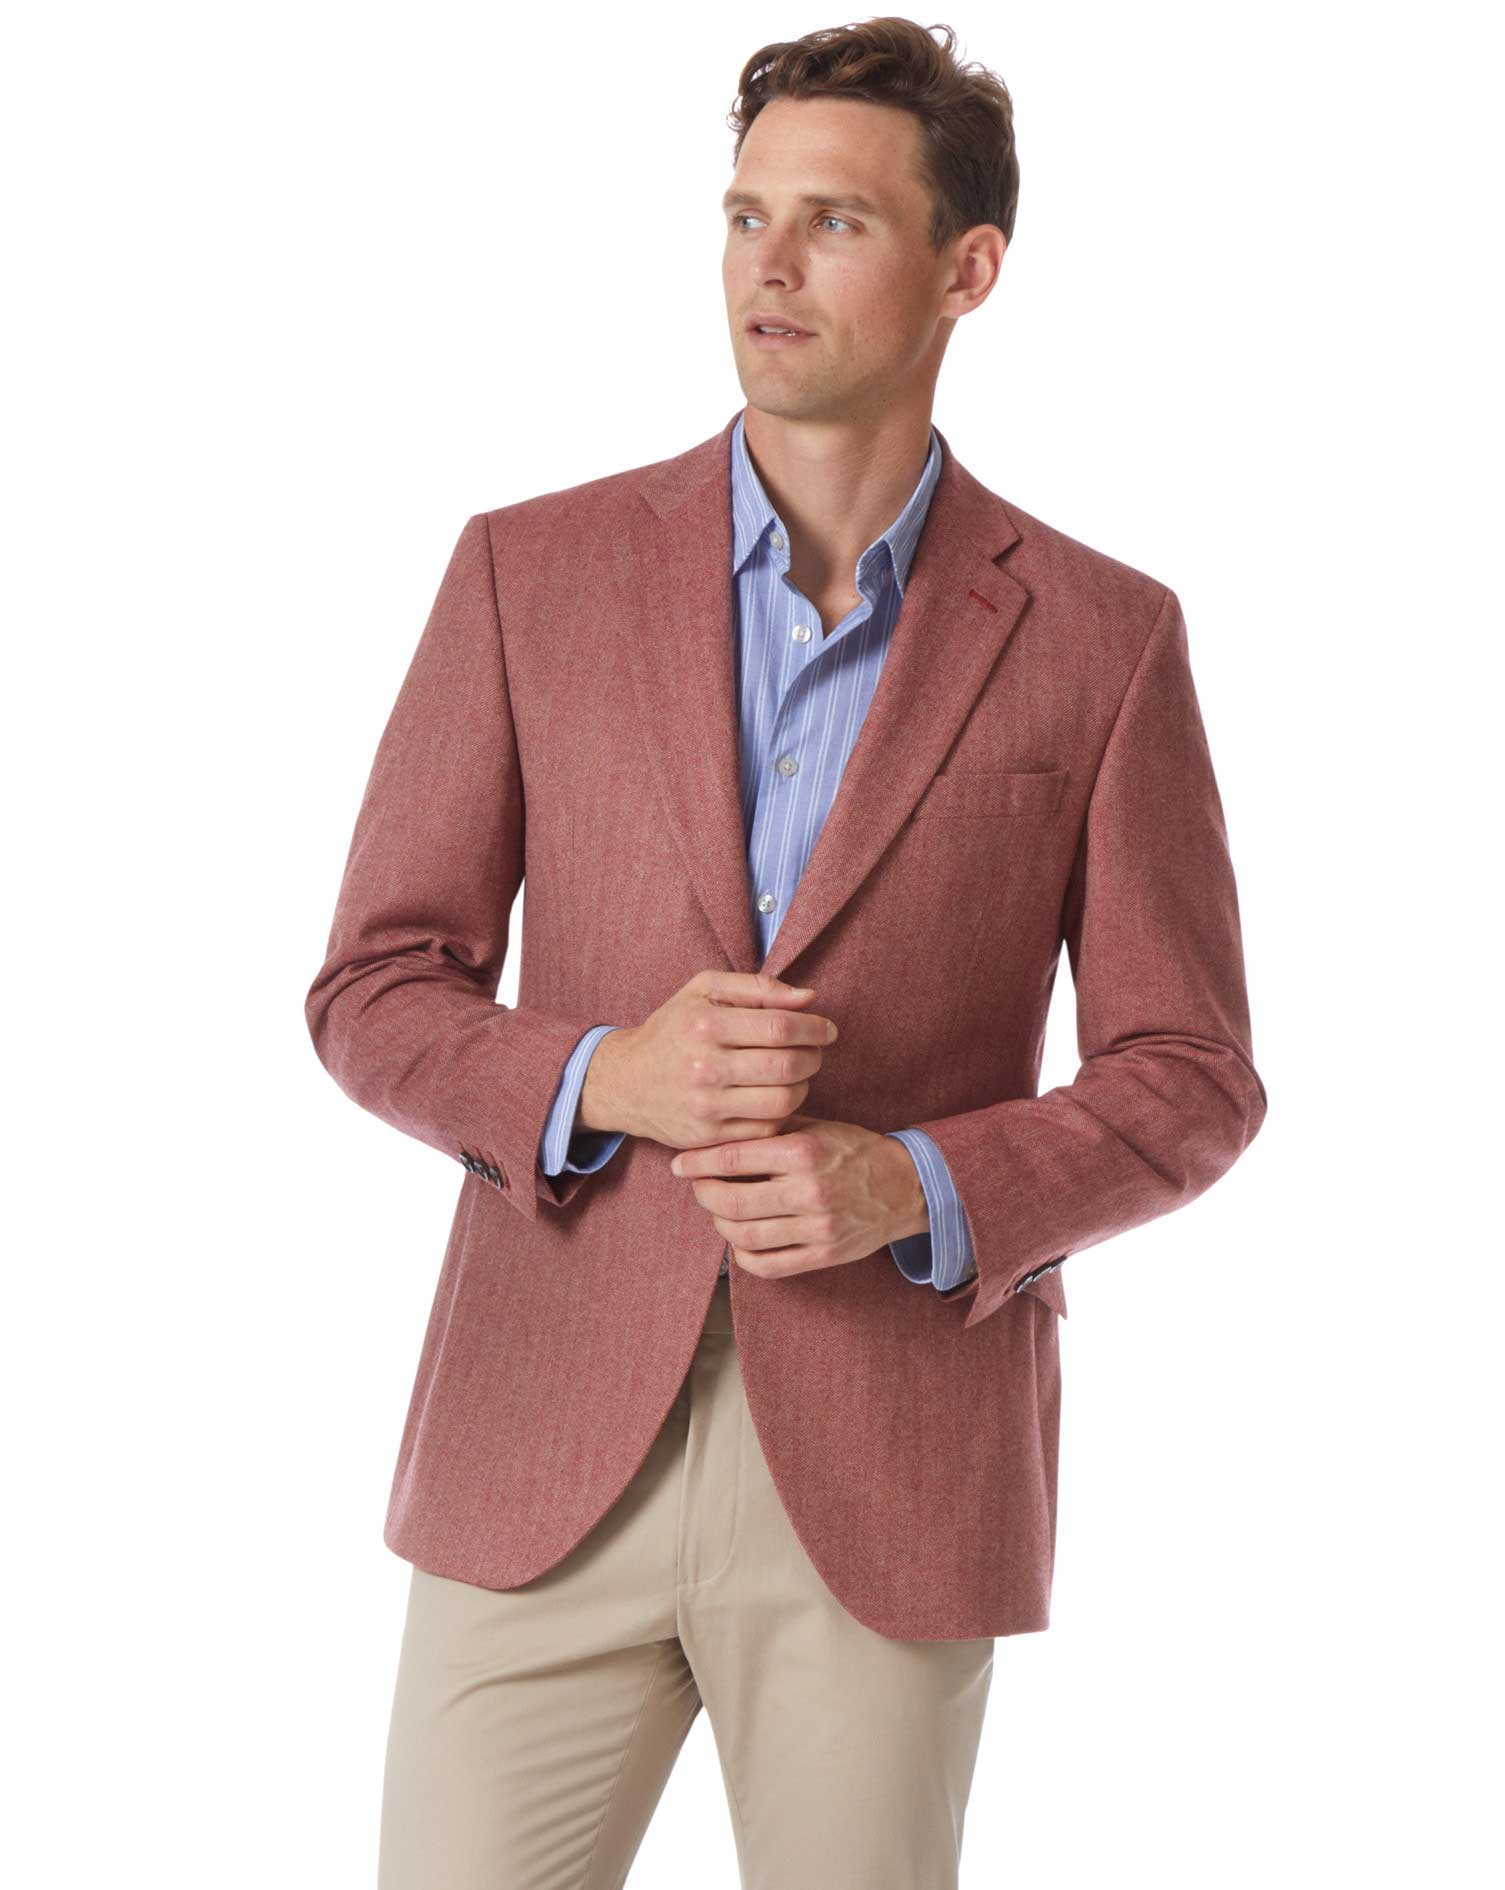 Classic Fit British Wool With Cashmere Jacket In Red Size 42 Regular by Charles Tyrwhitt